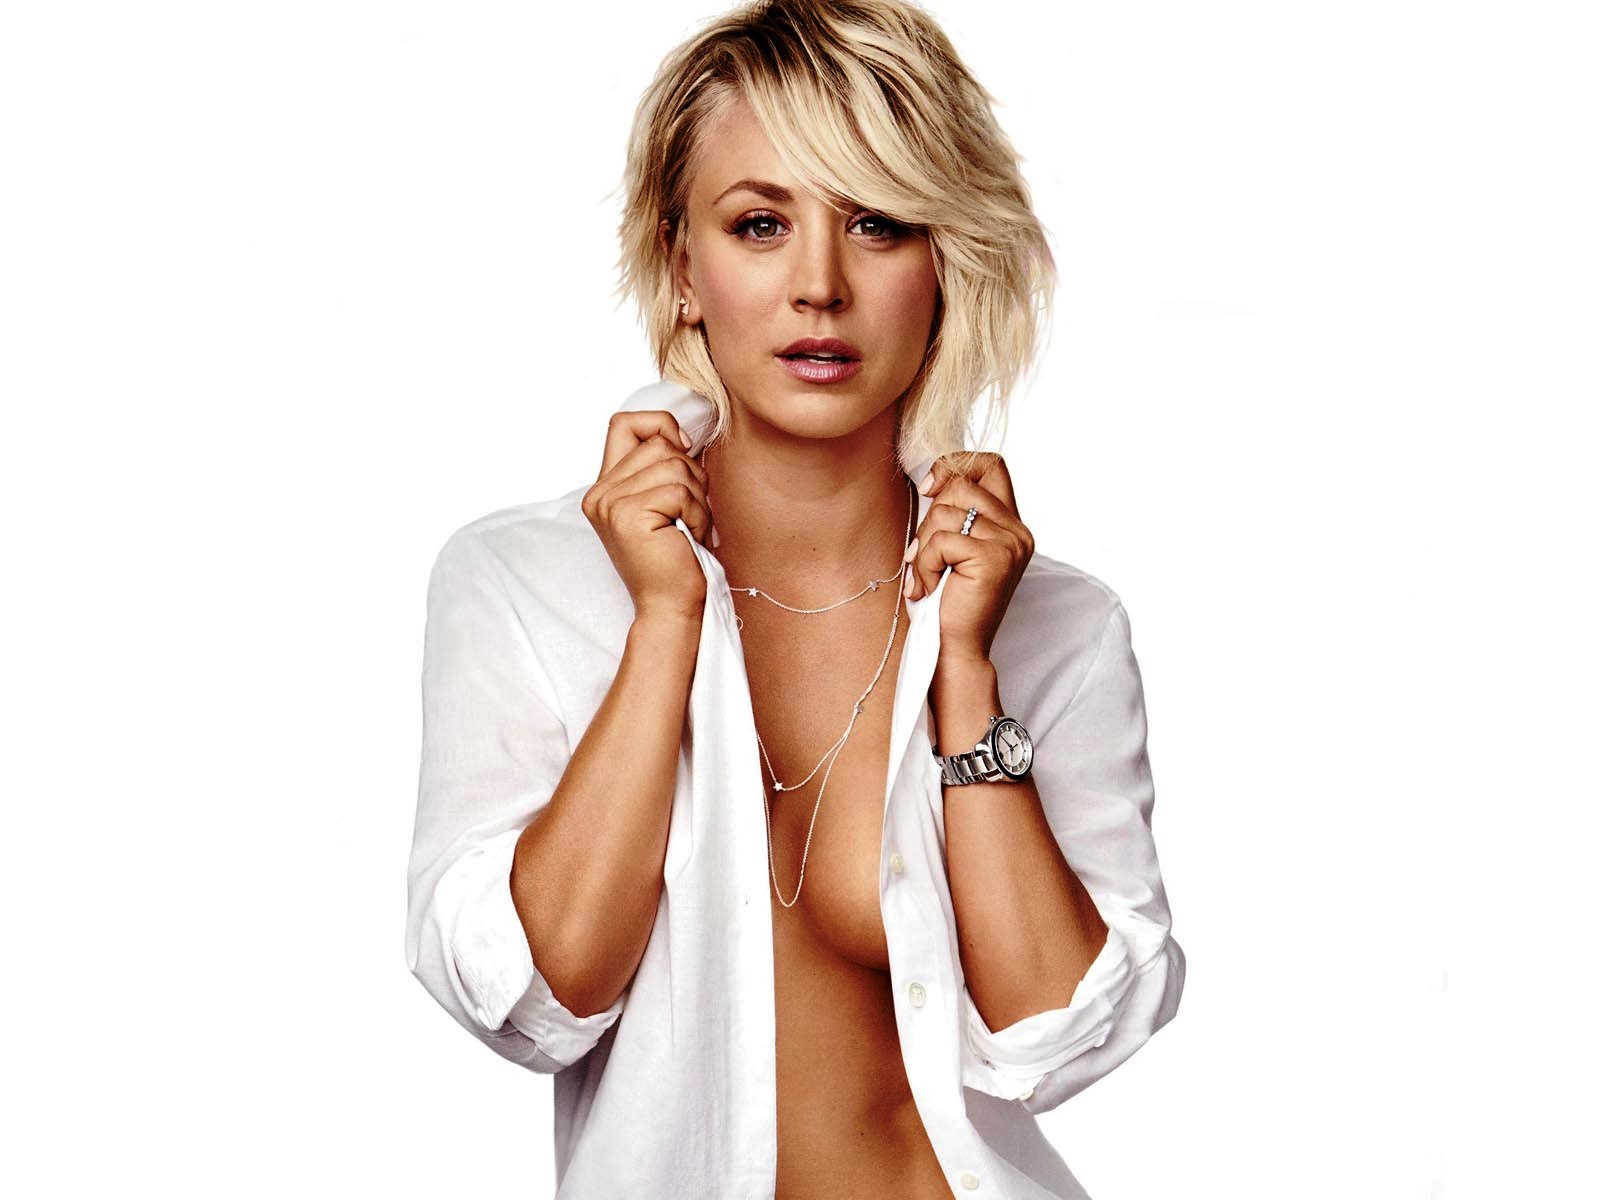 Kaley Cuoco nudes (81 pictures), leaked Boobs, Twitter, legs 2018